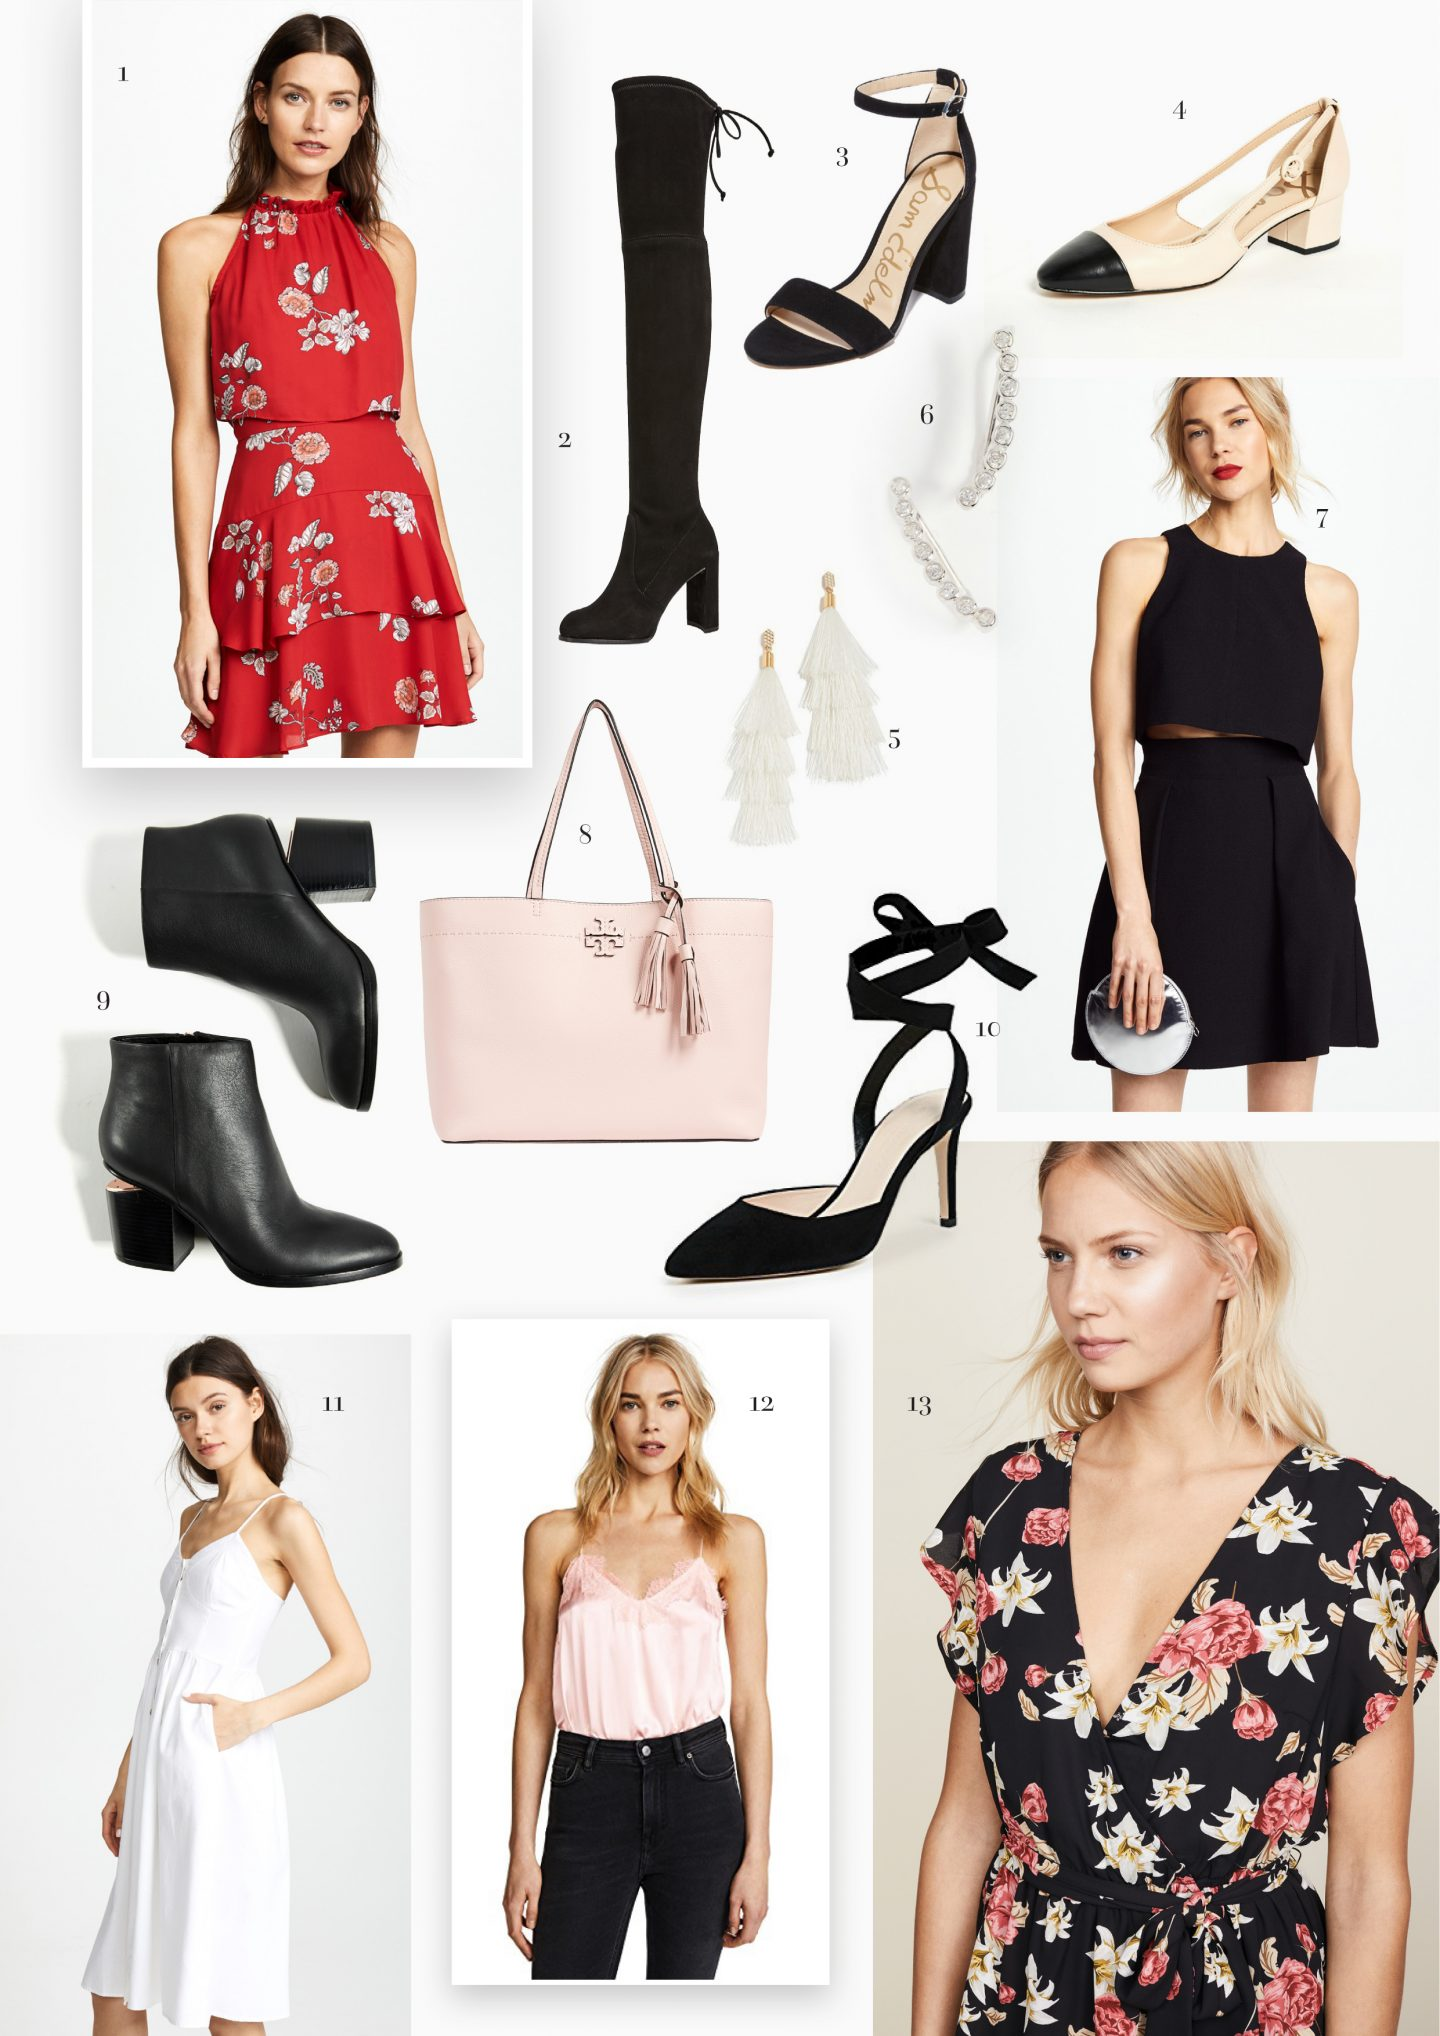 3a30390c81 I thought it was high time I started blogging properly again and what  better way to kick things off than with a sale round-up post? Shopbop's  annual 'Buy ...